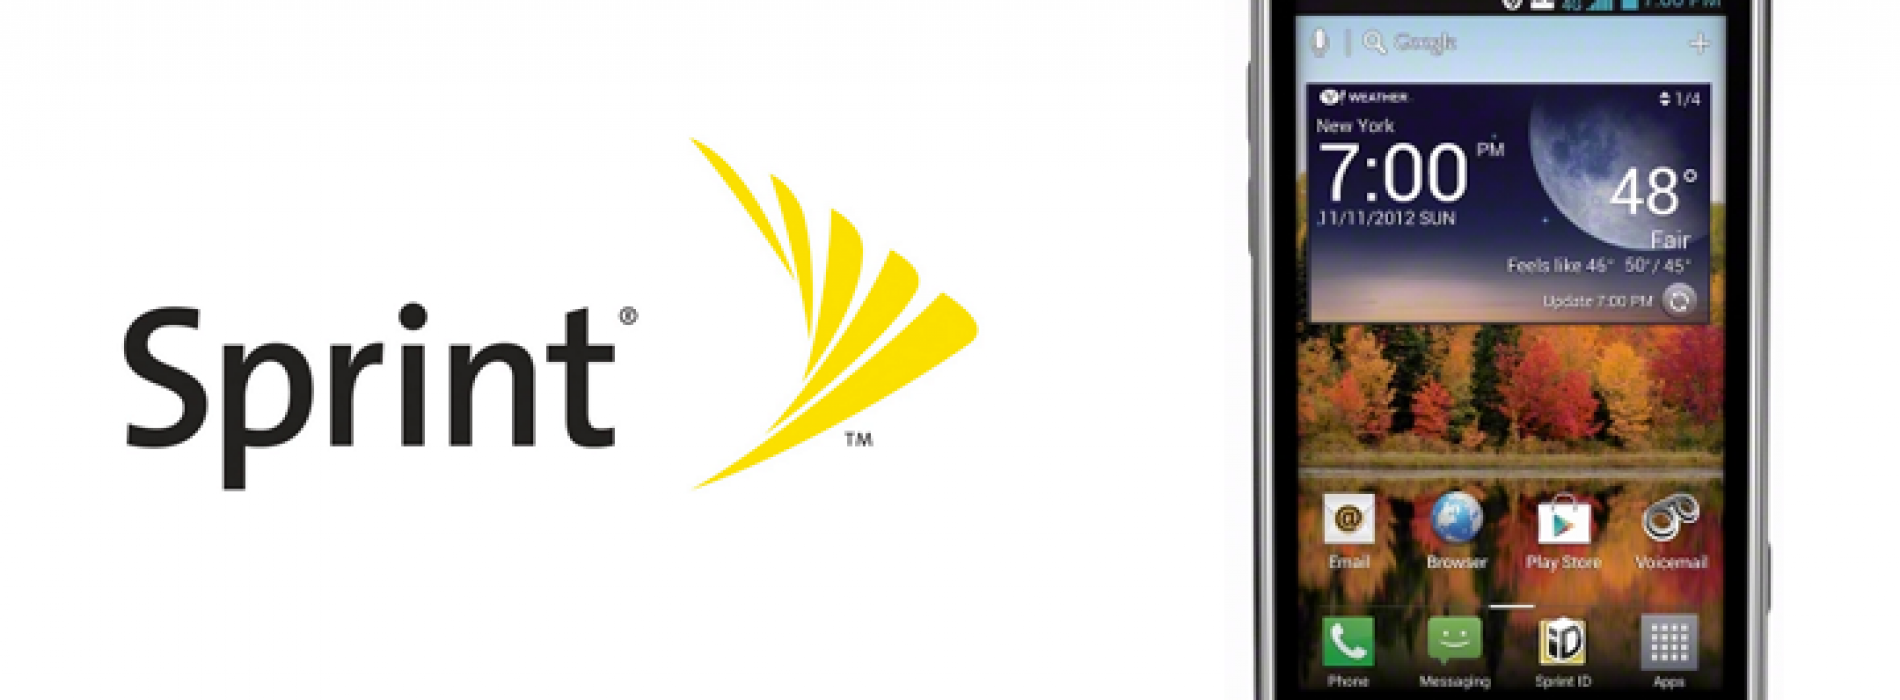 Budget-friendly $99 LG Mach arrives at Sprint on November 11